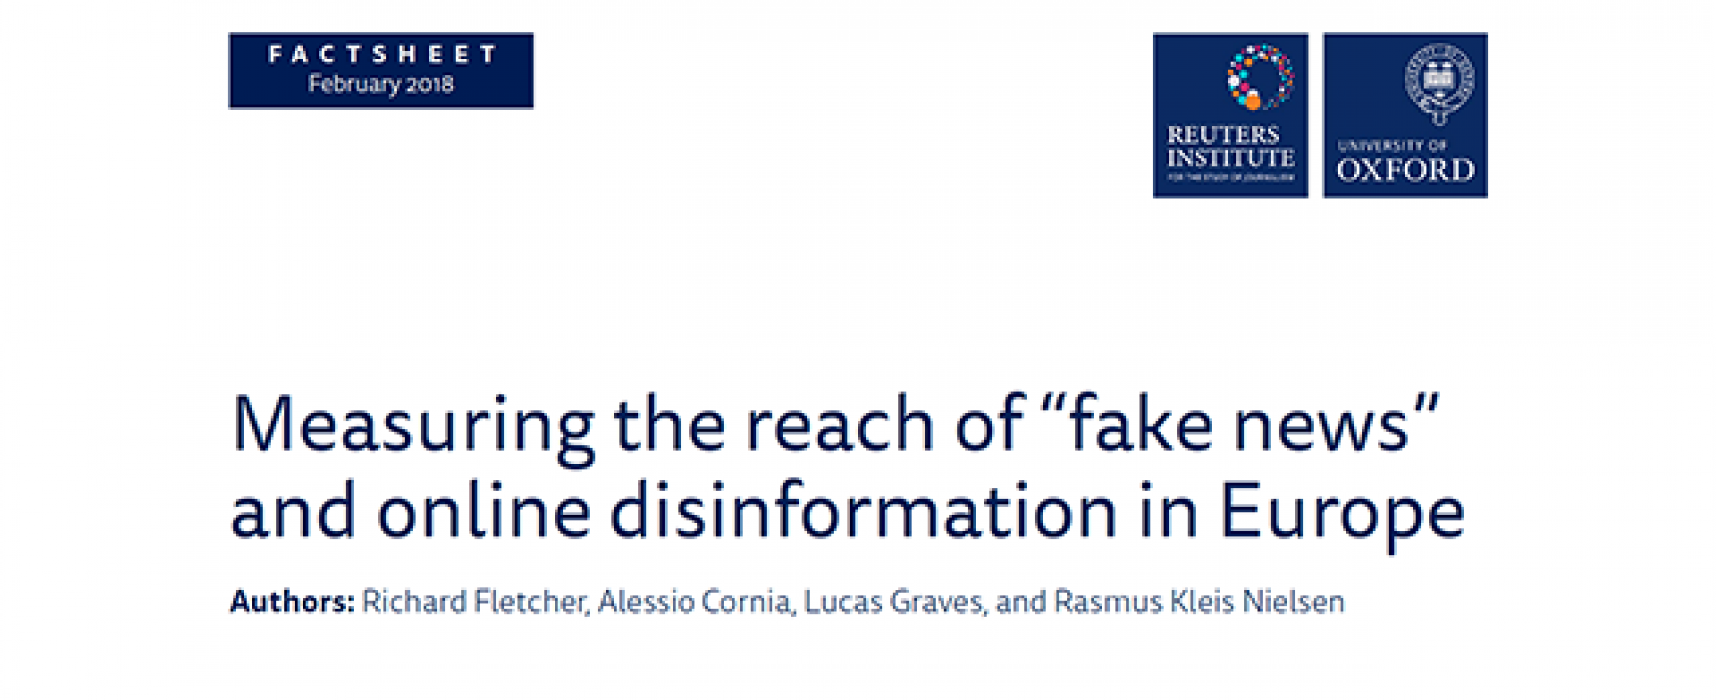 "Measuring the reach of ""fake news"" and online disinformation in Europe"